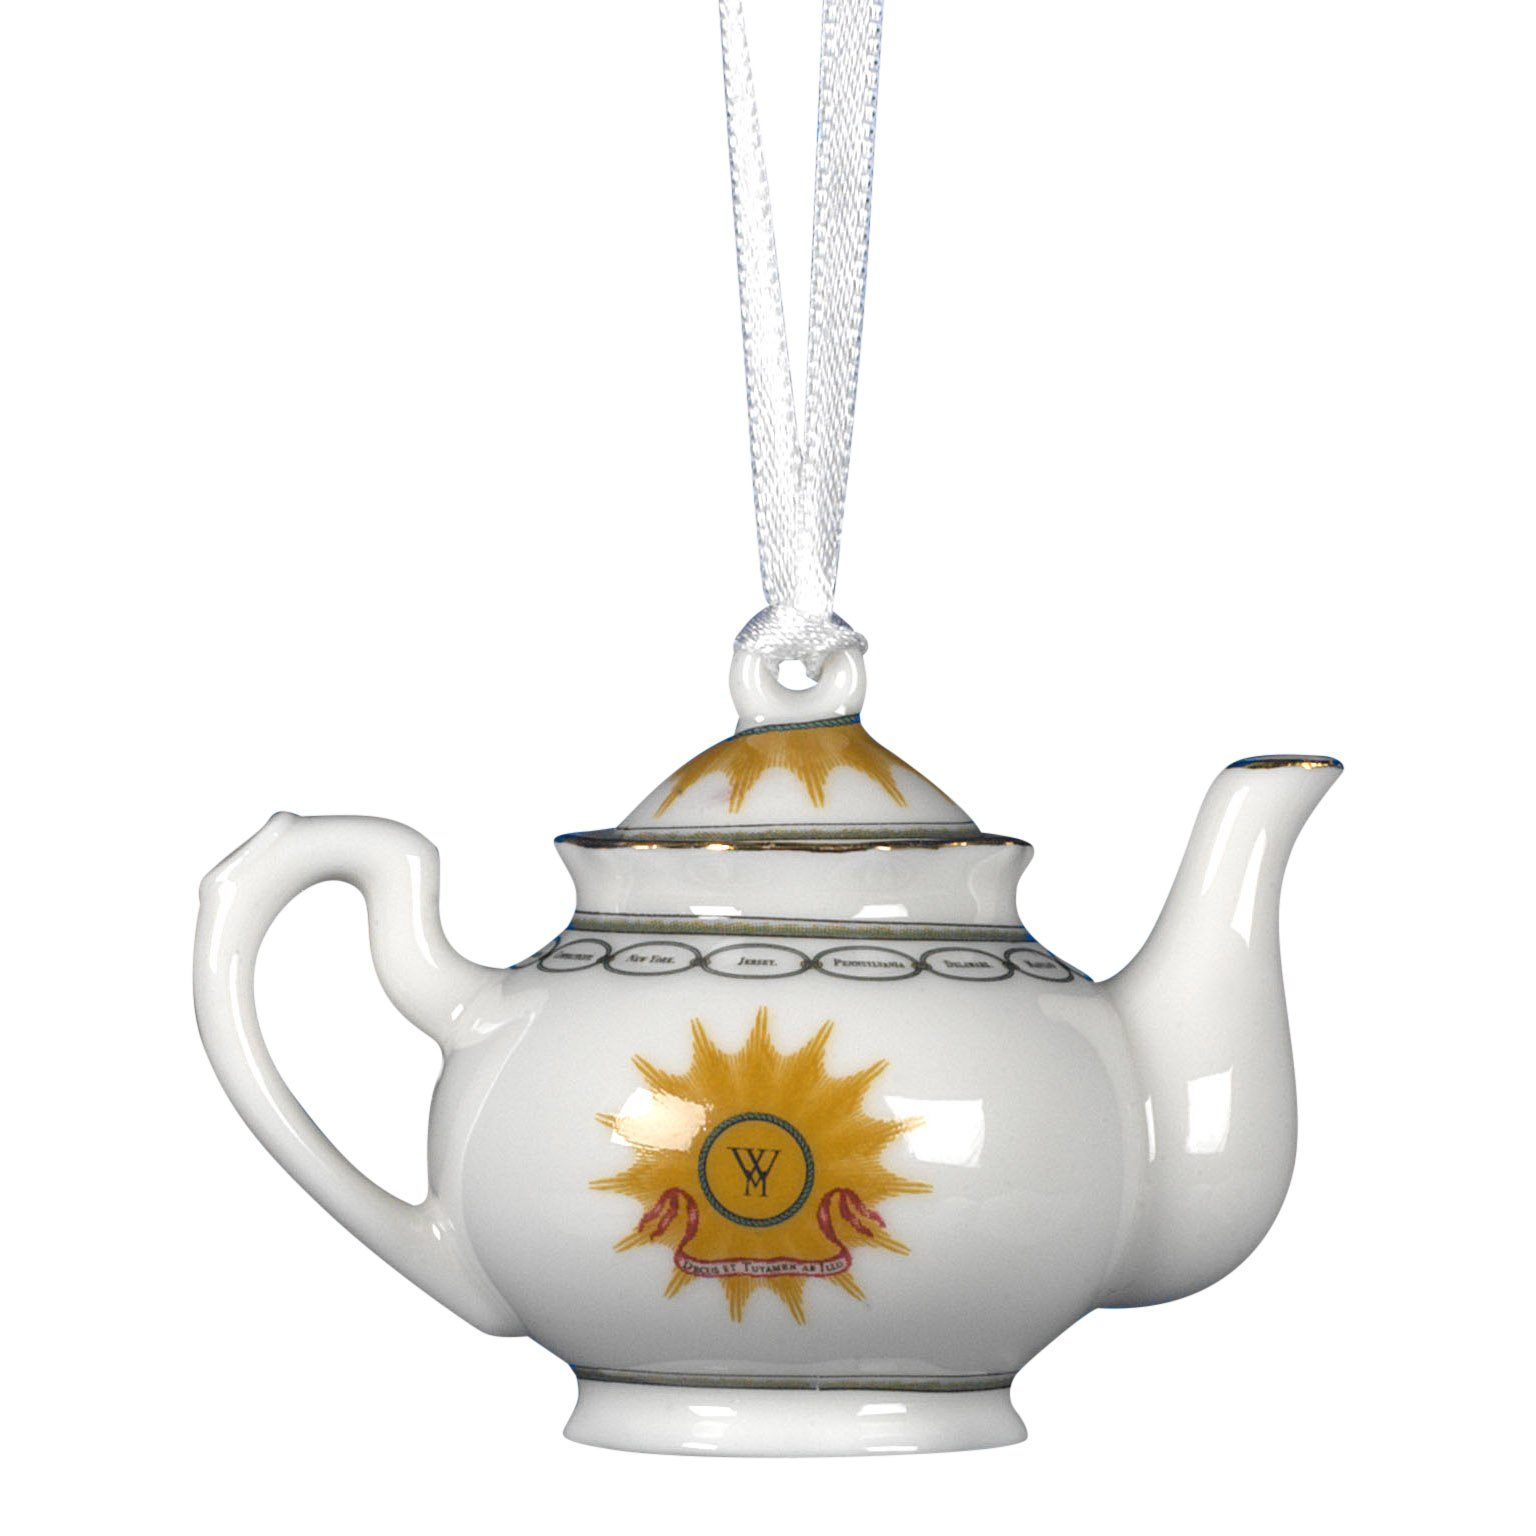 Washington States China Teapot Ornament